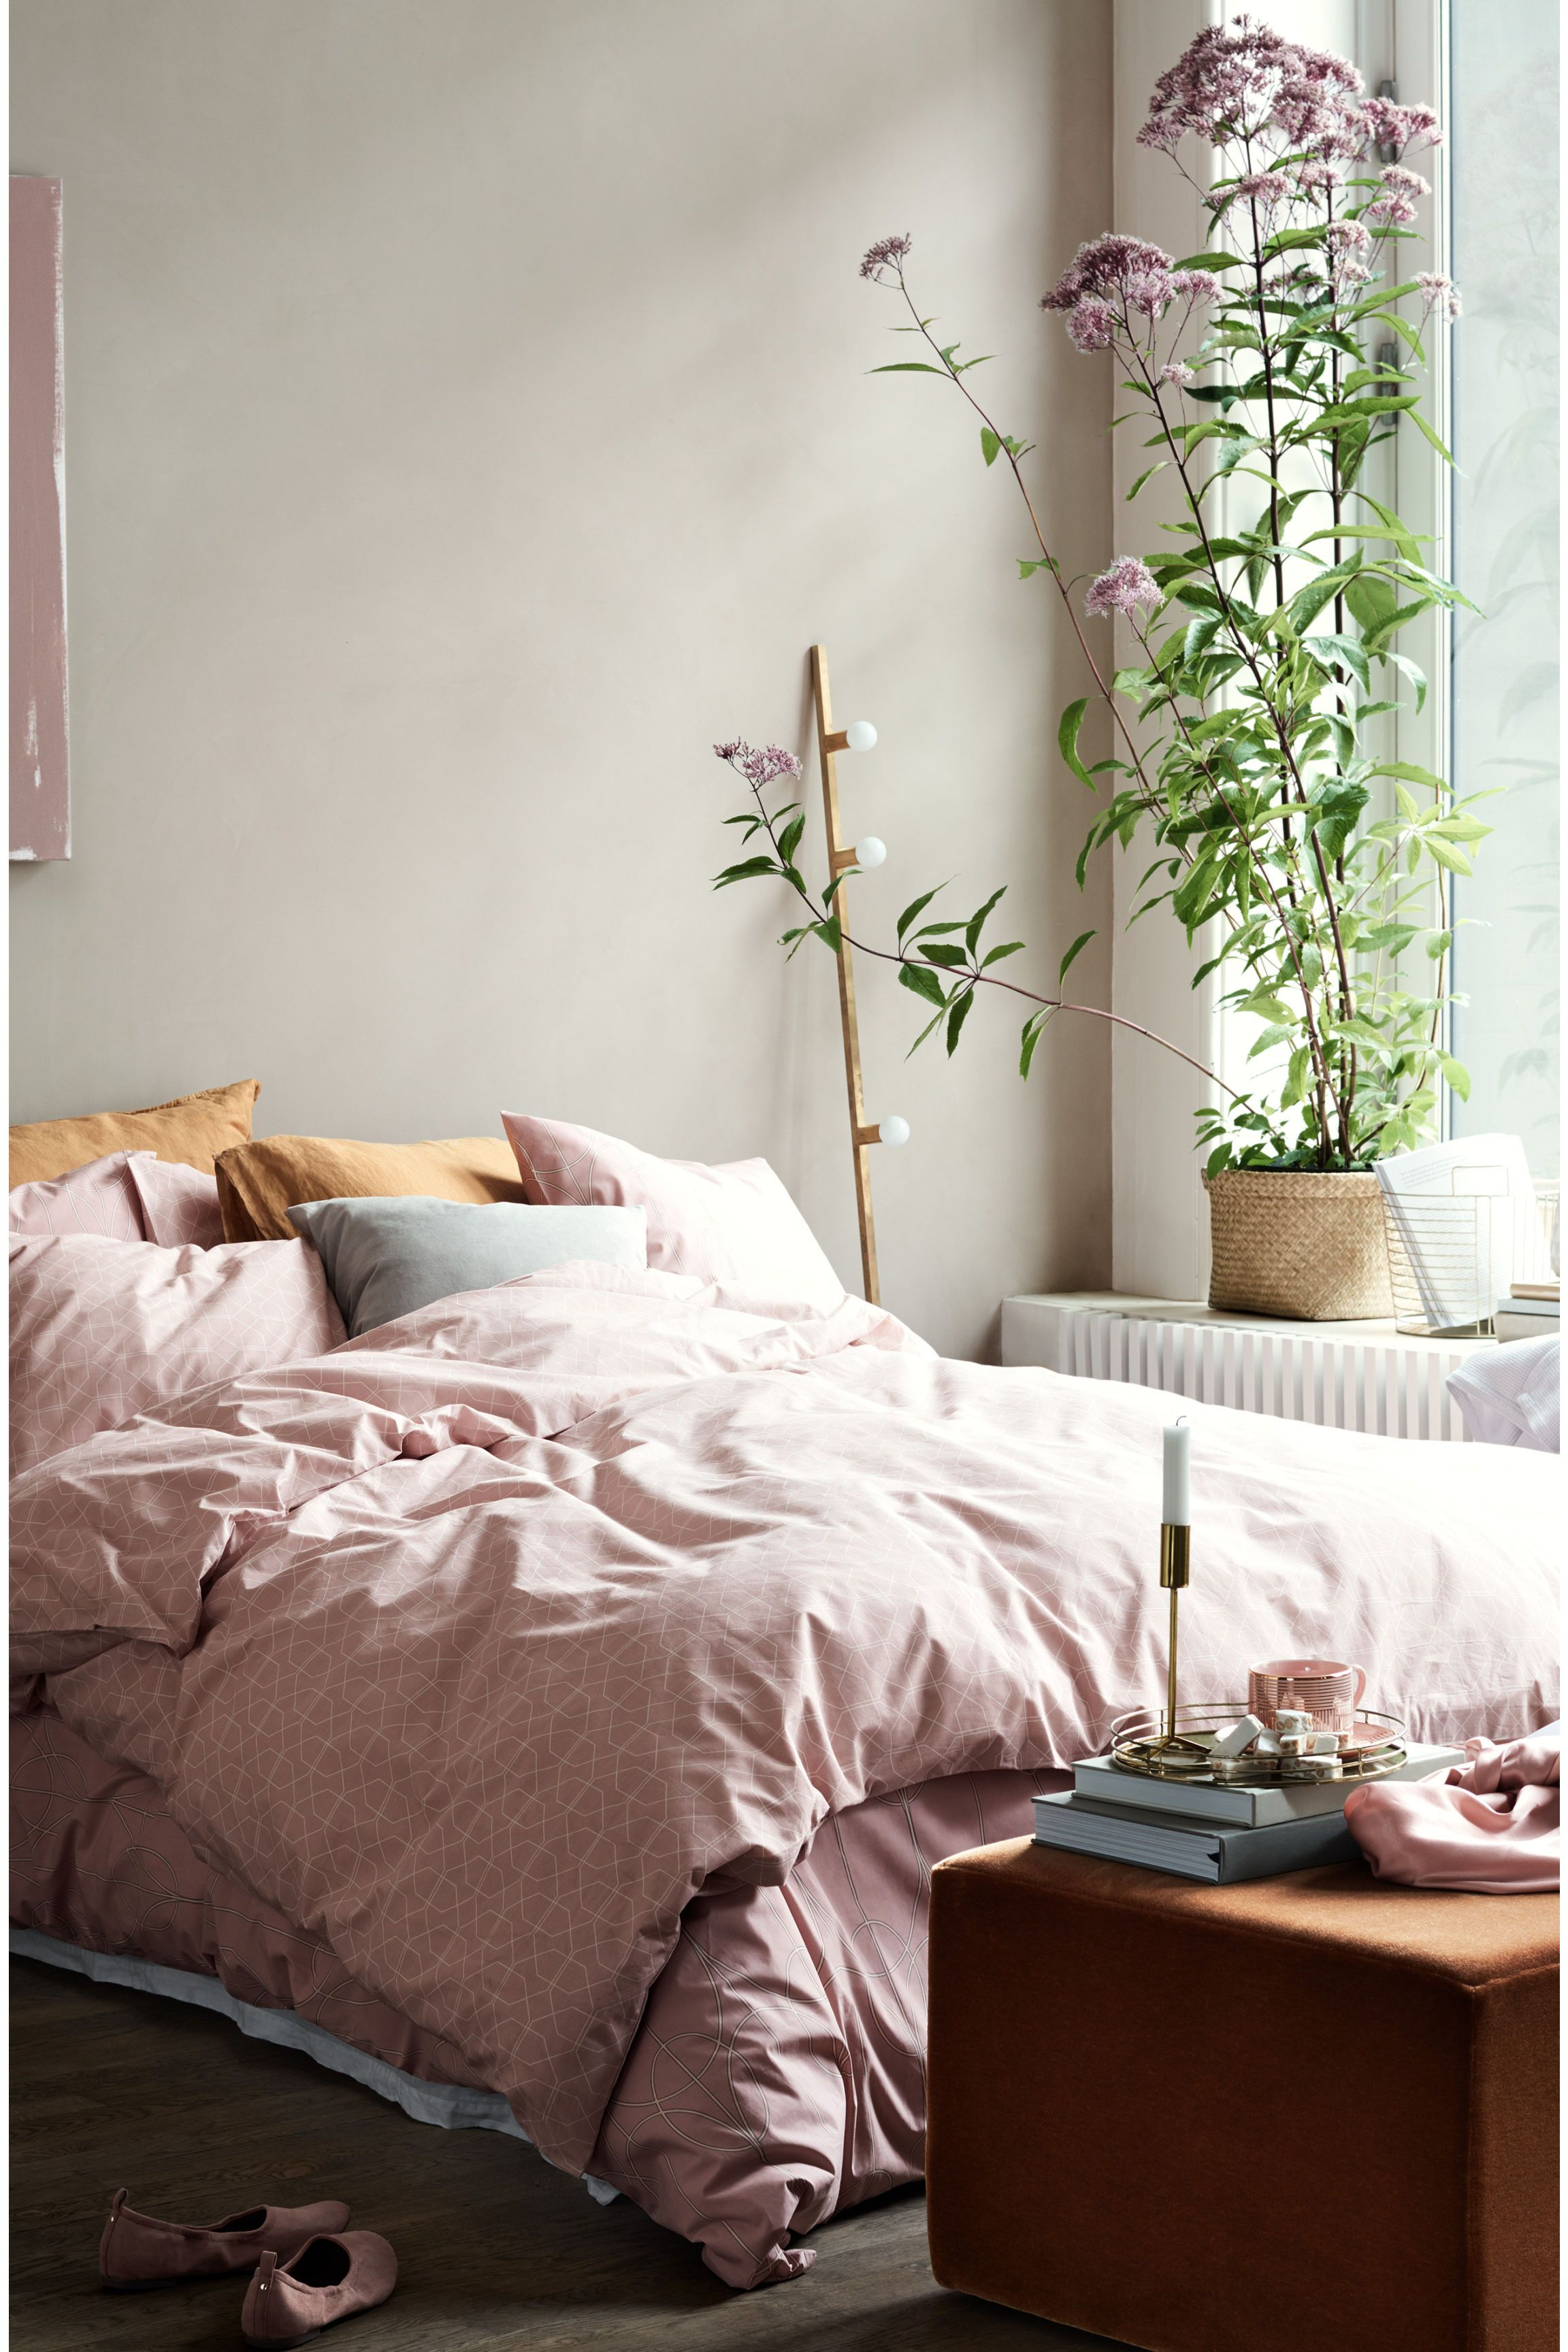 New Colour Schemes for Small Bedrooms